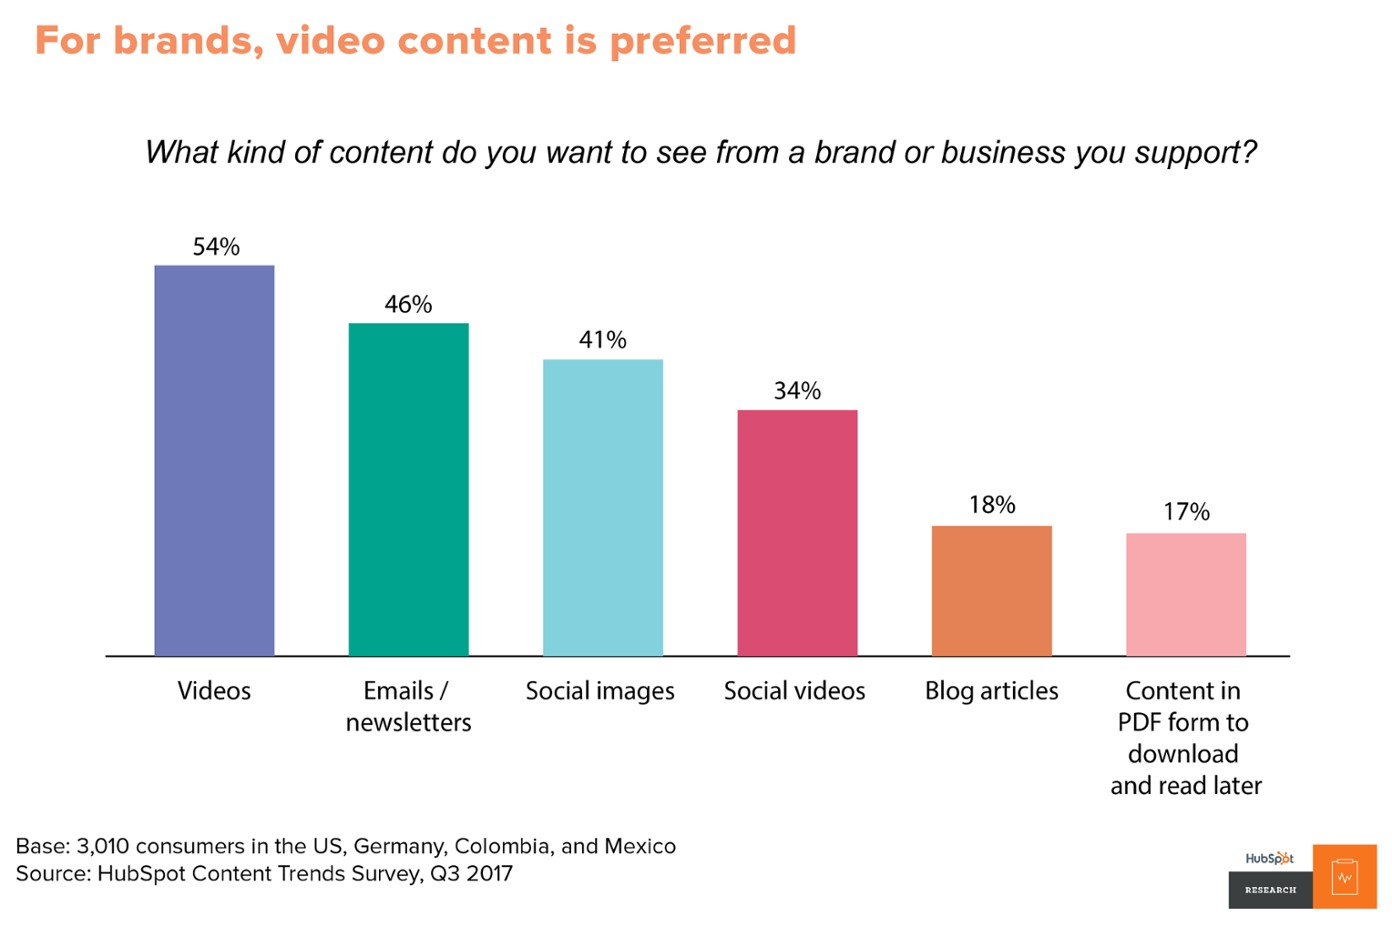 Global preferences for videos